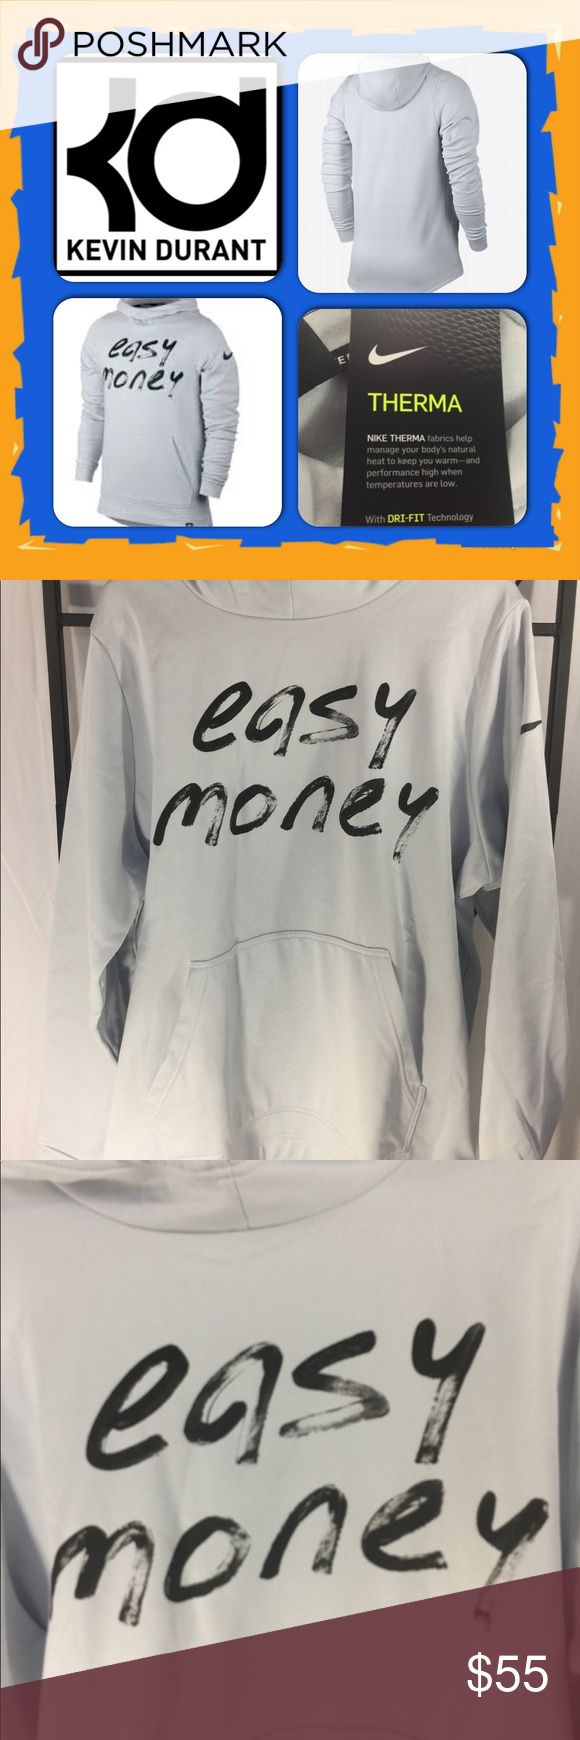 """55e2f776 KD Golden State Warriors Kevin Durant's Hoodie XL KD Golden State Warriors Kevin  Durant's Hoodie XL, """"Easy Money"""" Nike Basketball M Nike Tops Sweatshirts &  ..."""